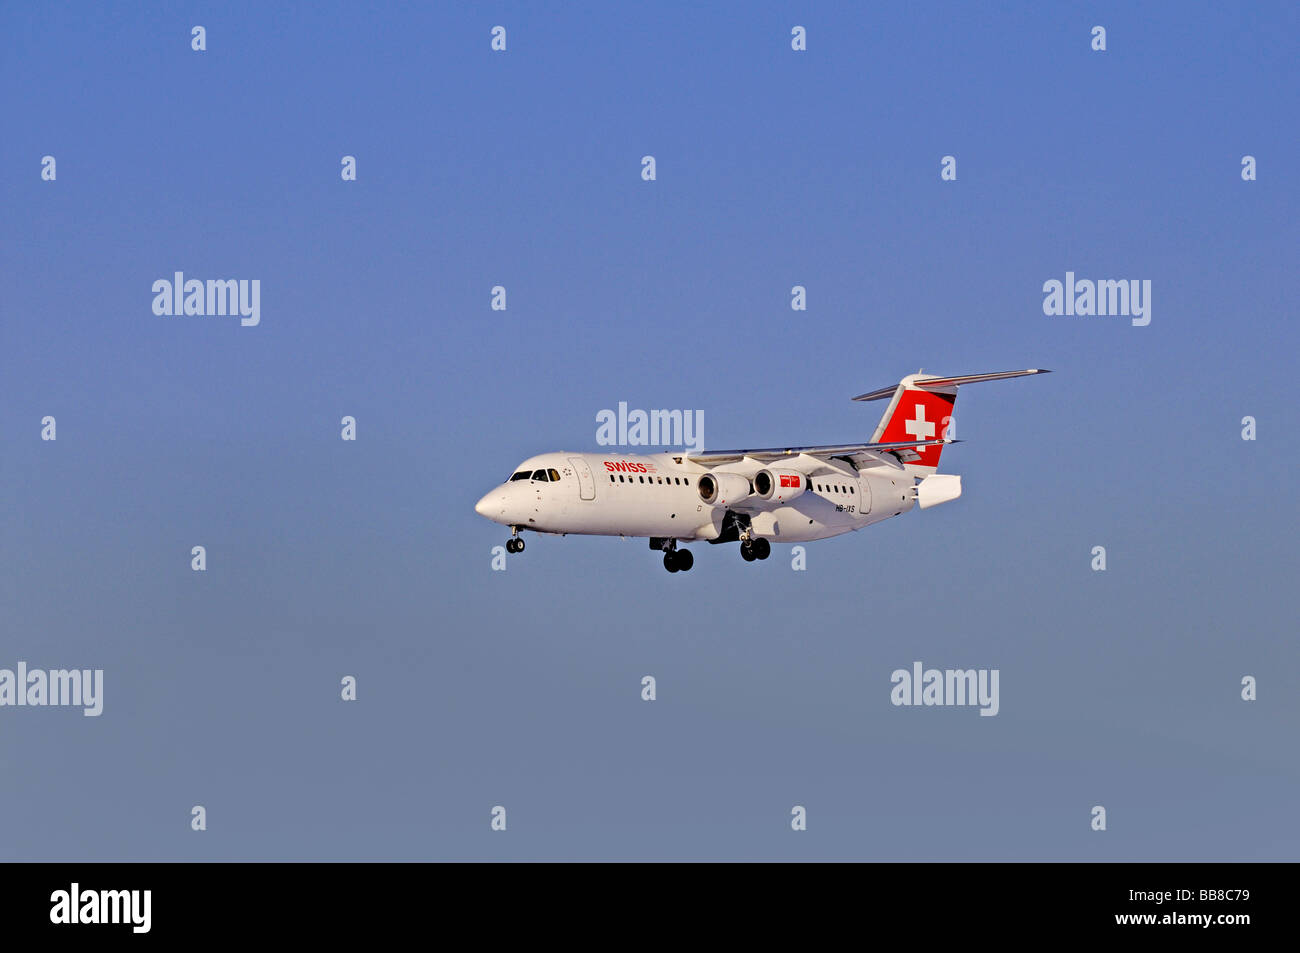 Commercial aircraft, Swissair, AI(R) Avro RJ & BAe 146, approaching to land against a hazy sky - Stock Image